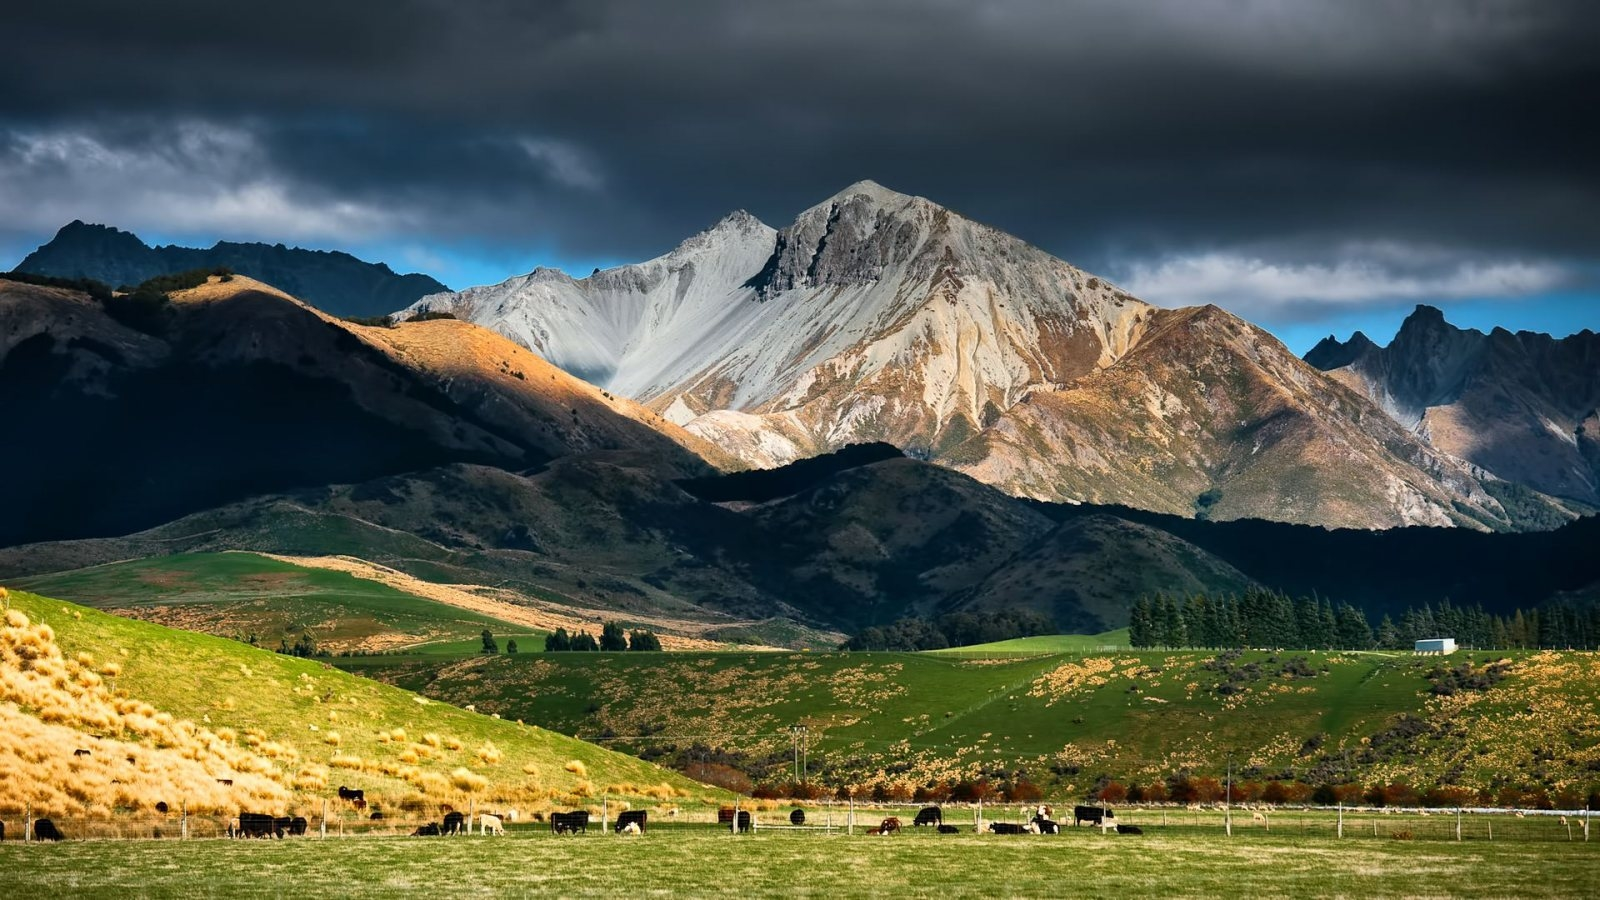 Mountains Hd Widescreen High Res Backgrounds Images For